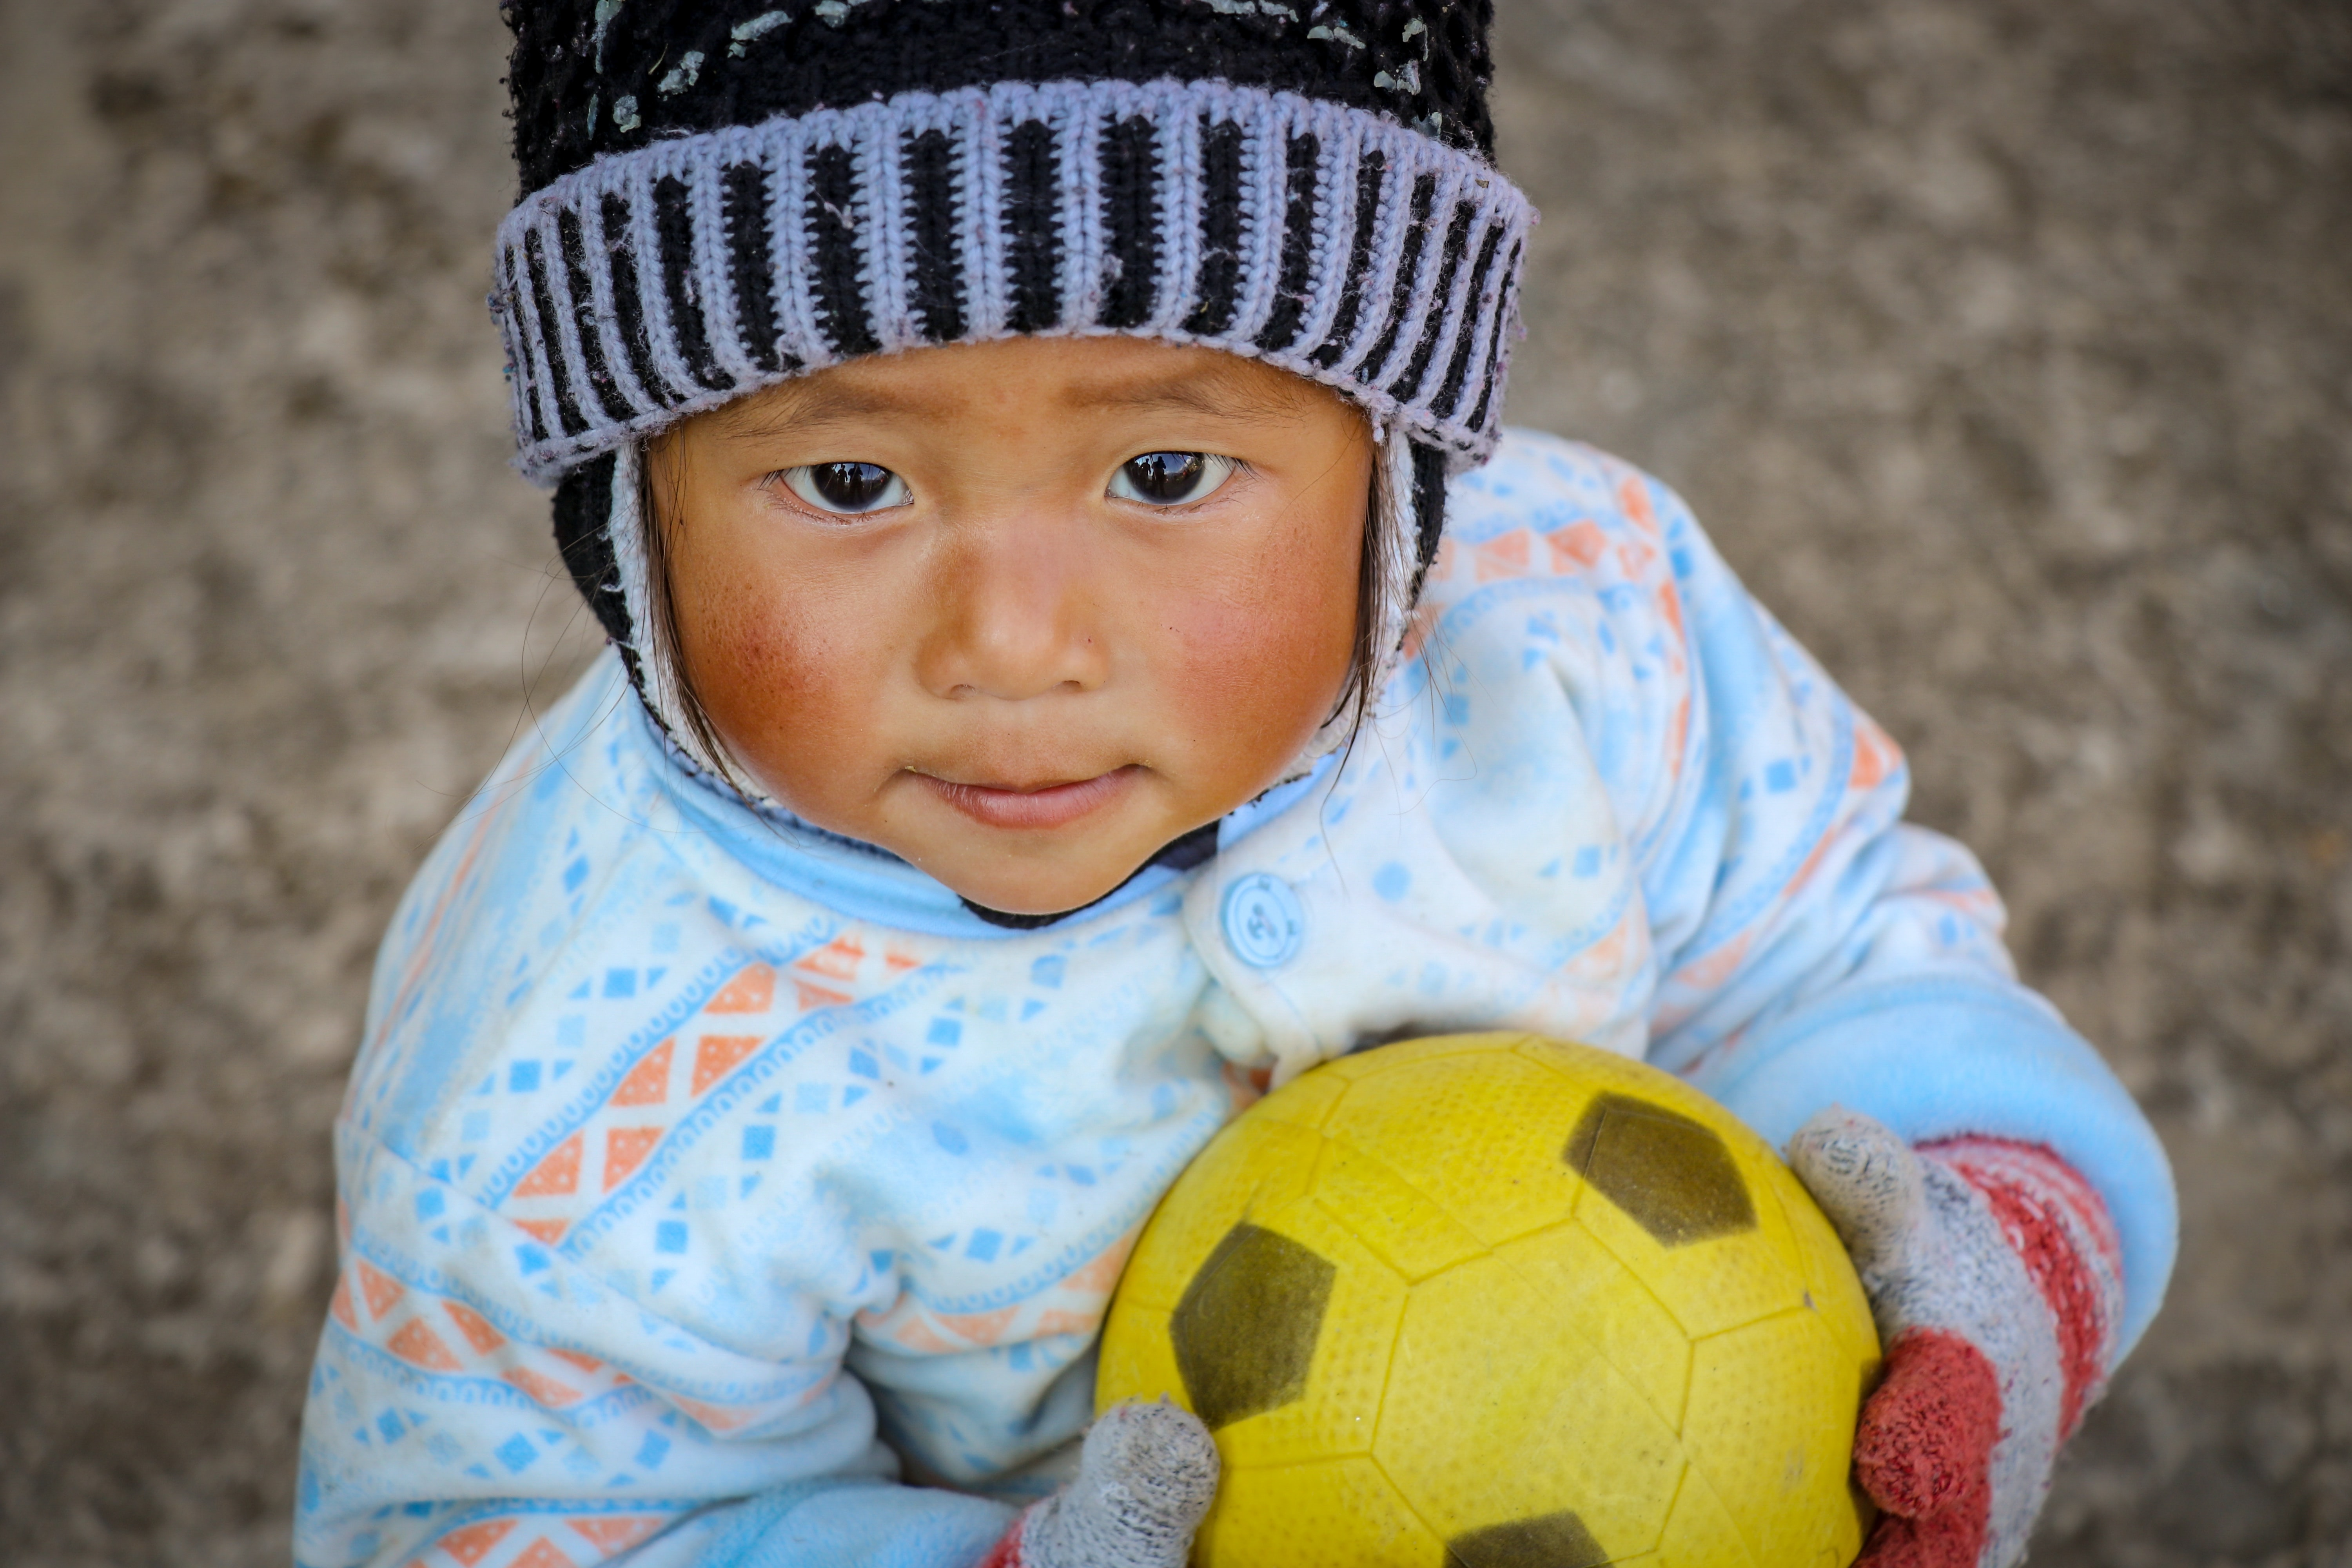 baby in blue and white shirt holding a ball